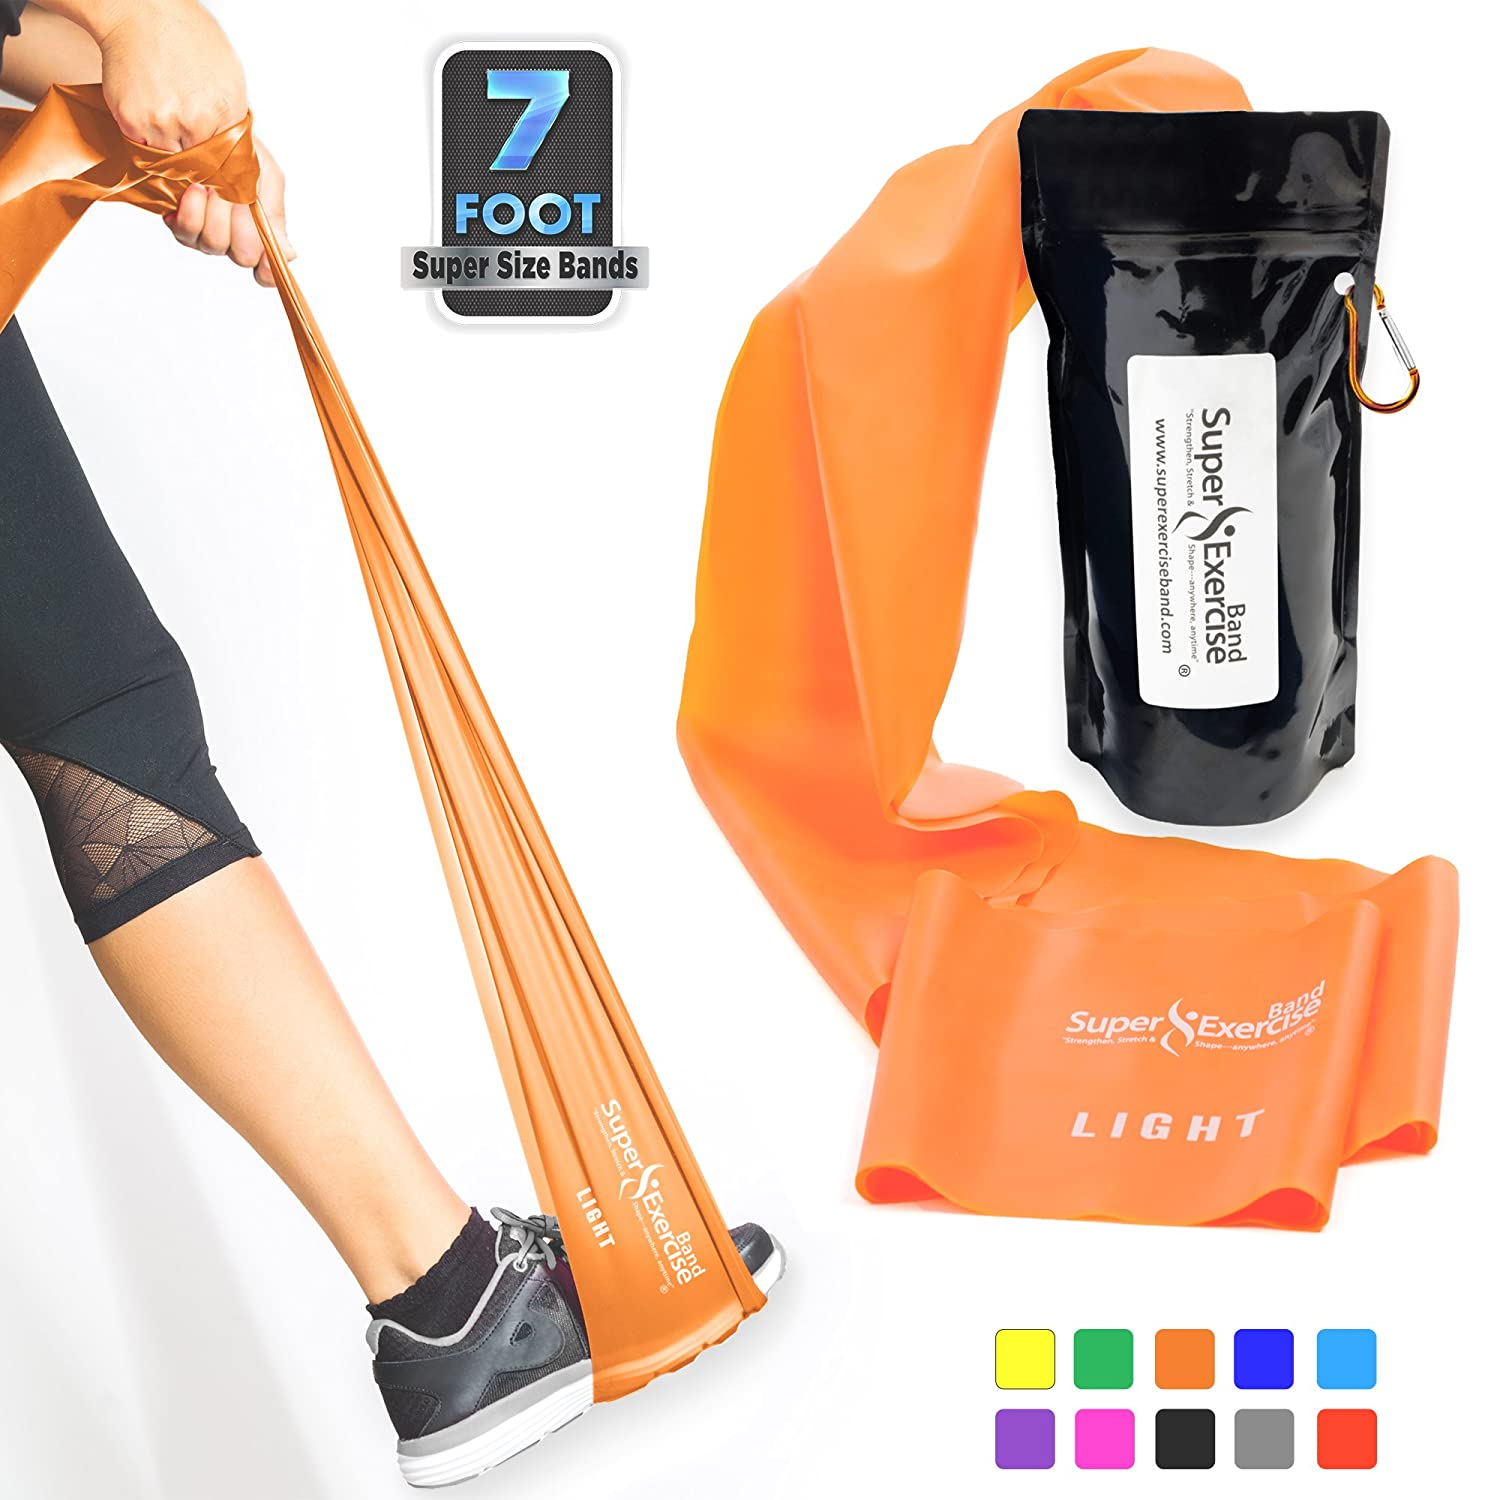 Physical Therapy Pilates Rehab 30 Page E-Book Choose Light Medium or Heavy Strength For Gym Long Latex Free Resistance Bands Plus Mini Door Anchor Carry Bag. Super Exercise Band USA 7 ft Yoga